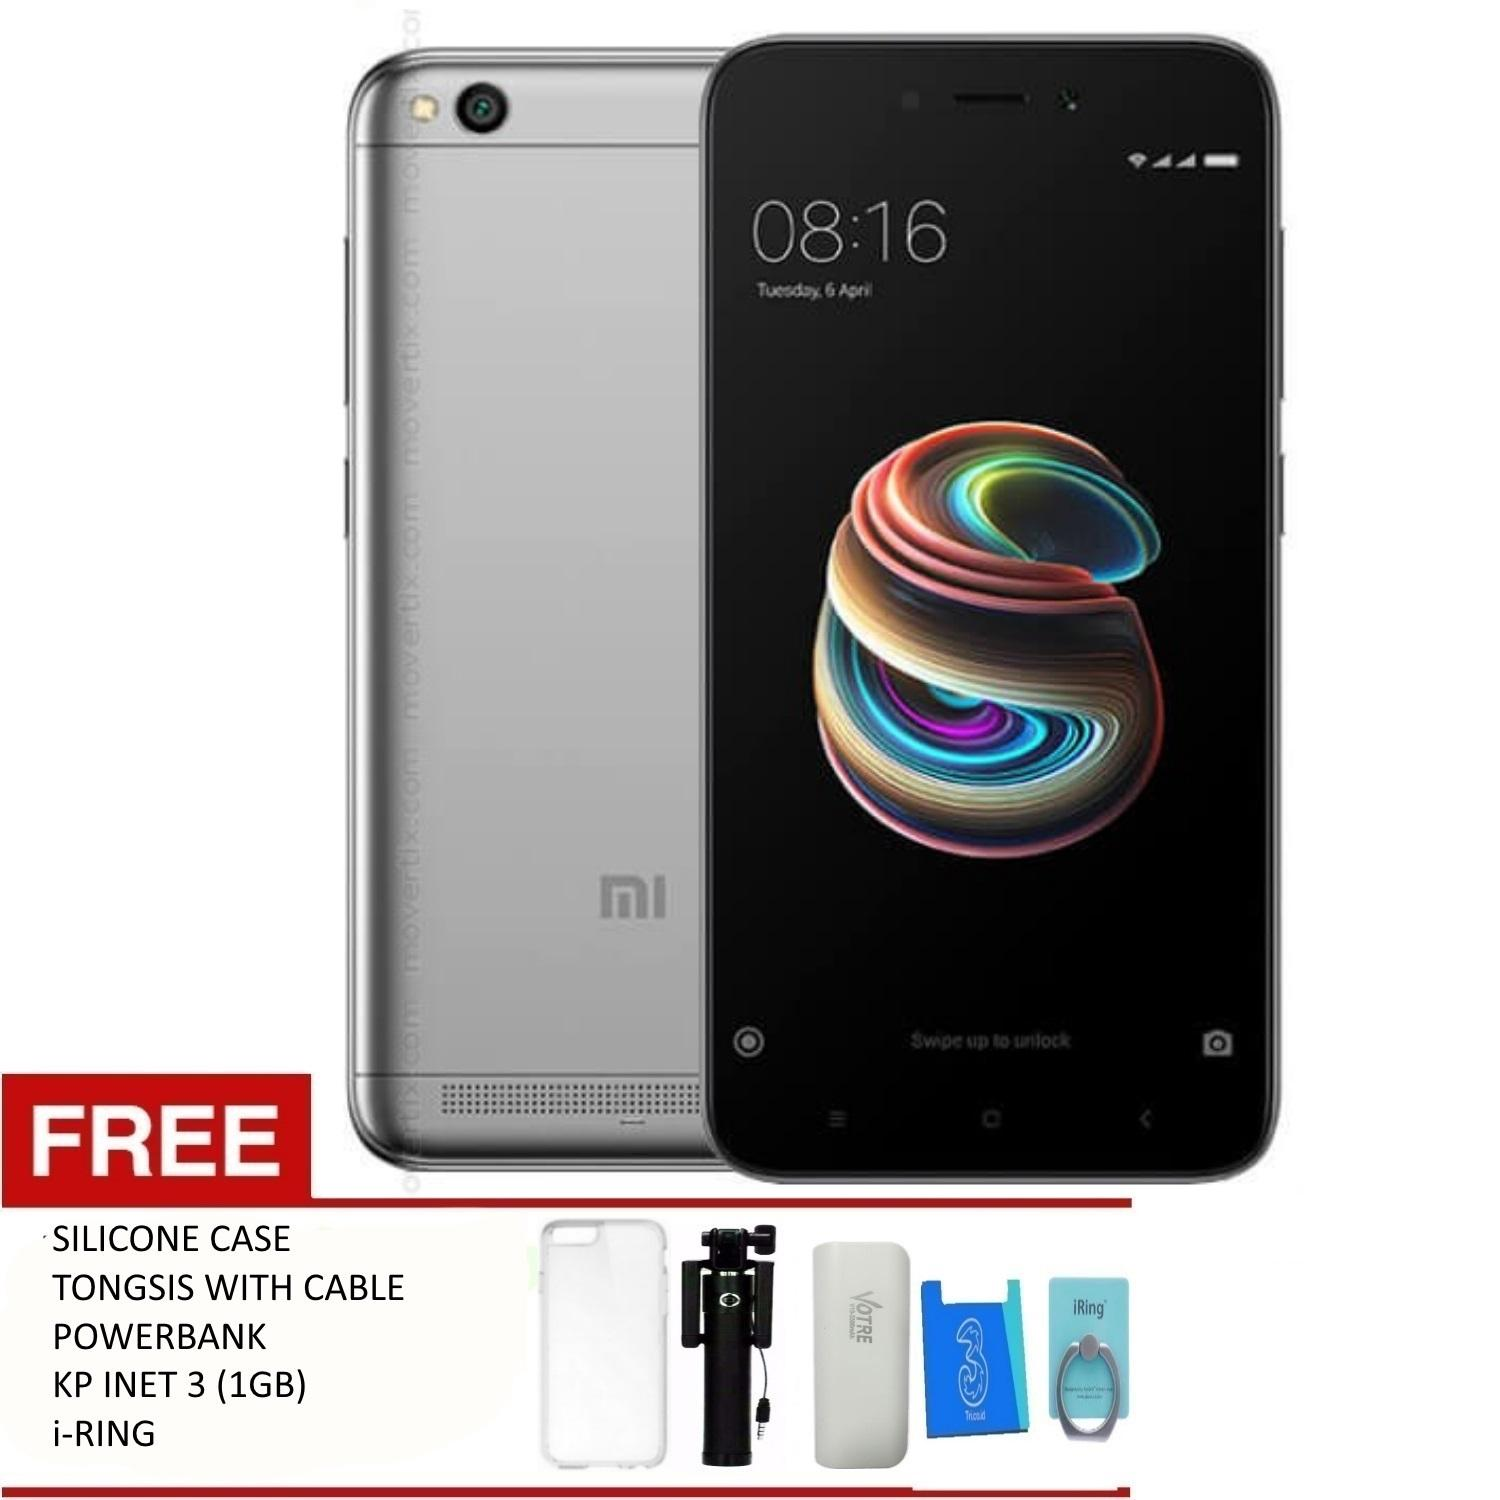 Buy Sell Cheapest Redmi 3 Best Quality Product Deals Indonesian Xiaomi Note 4 Snapdragon 32gb Garansi Distributor 5a Ram 2gb Rom 16gb Resmi Tam Free Silicone